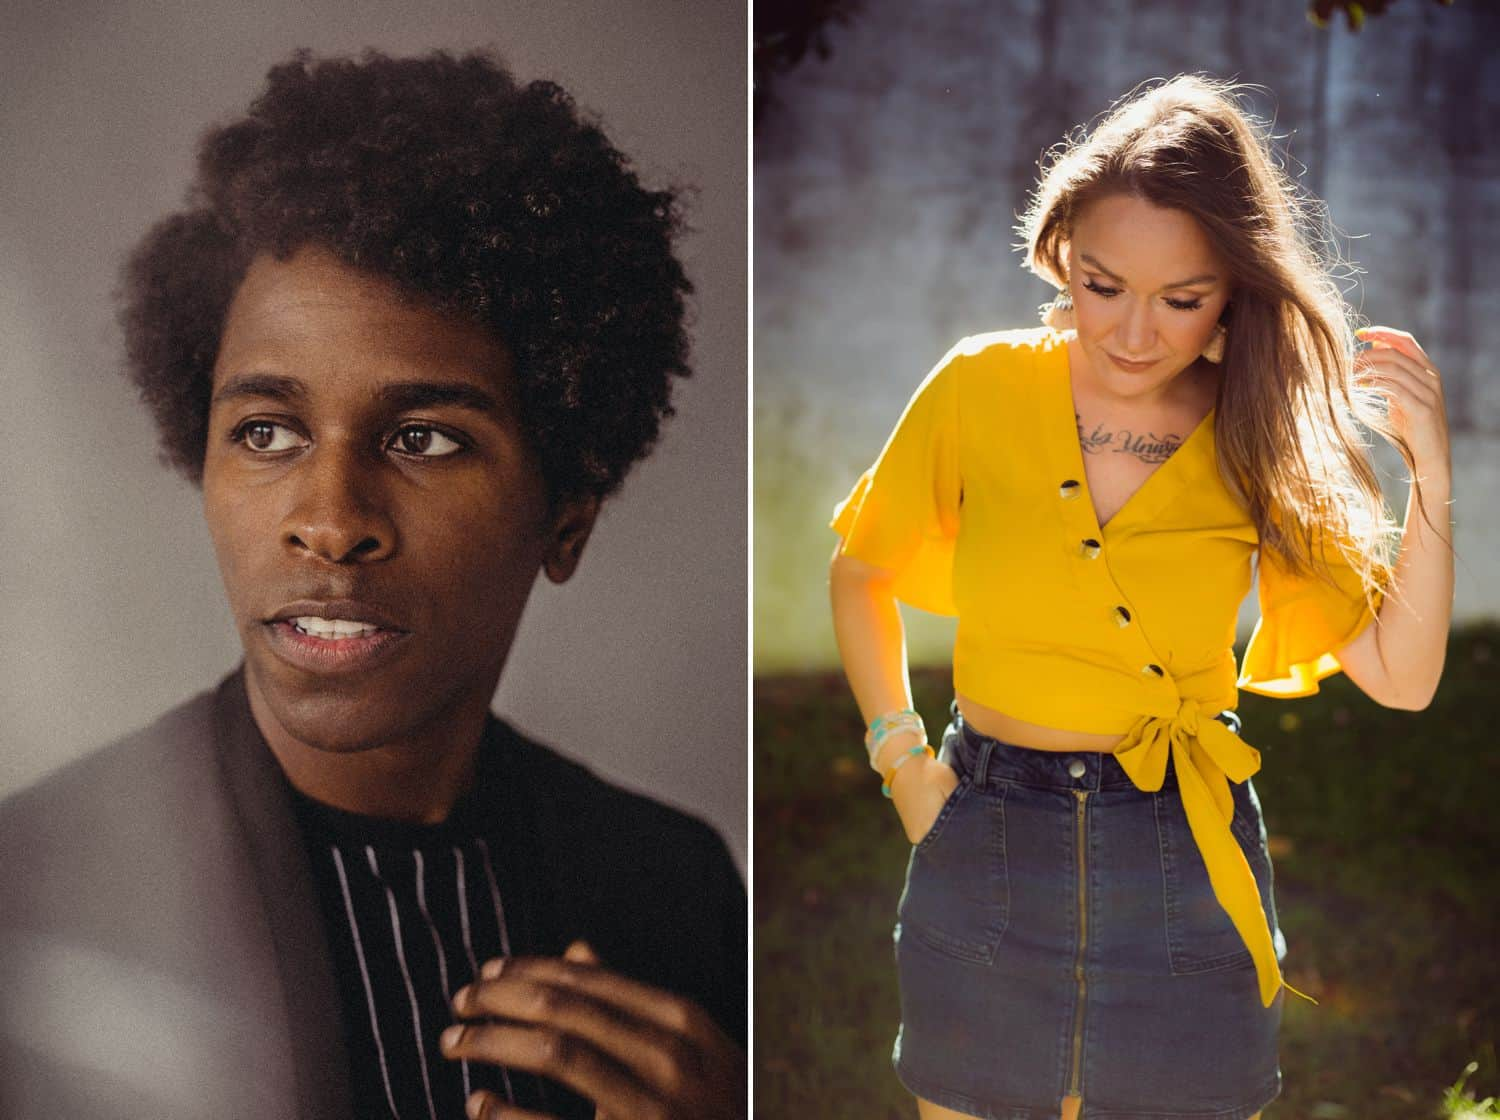 #ShootProofPro: 7 Stories for Days When You Think You Suck (Left: Black man in a suit jacket. Right: White woman in a yellow blouse.)